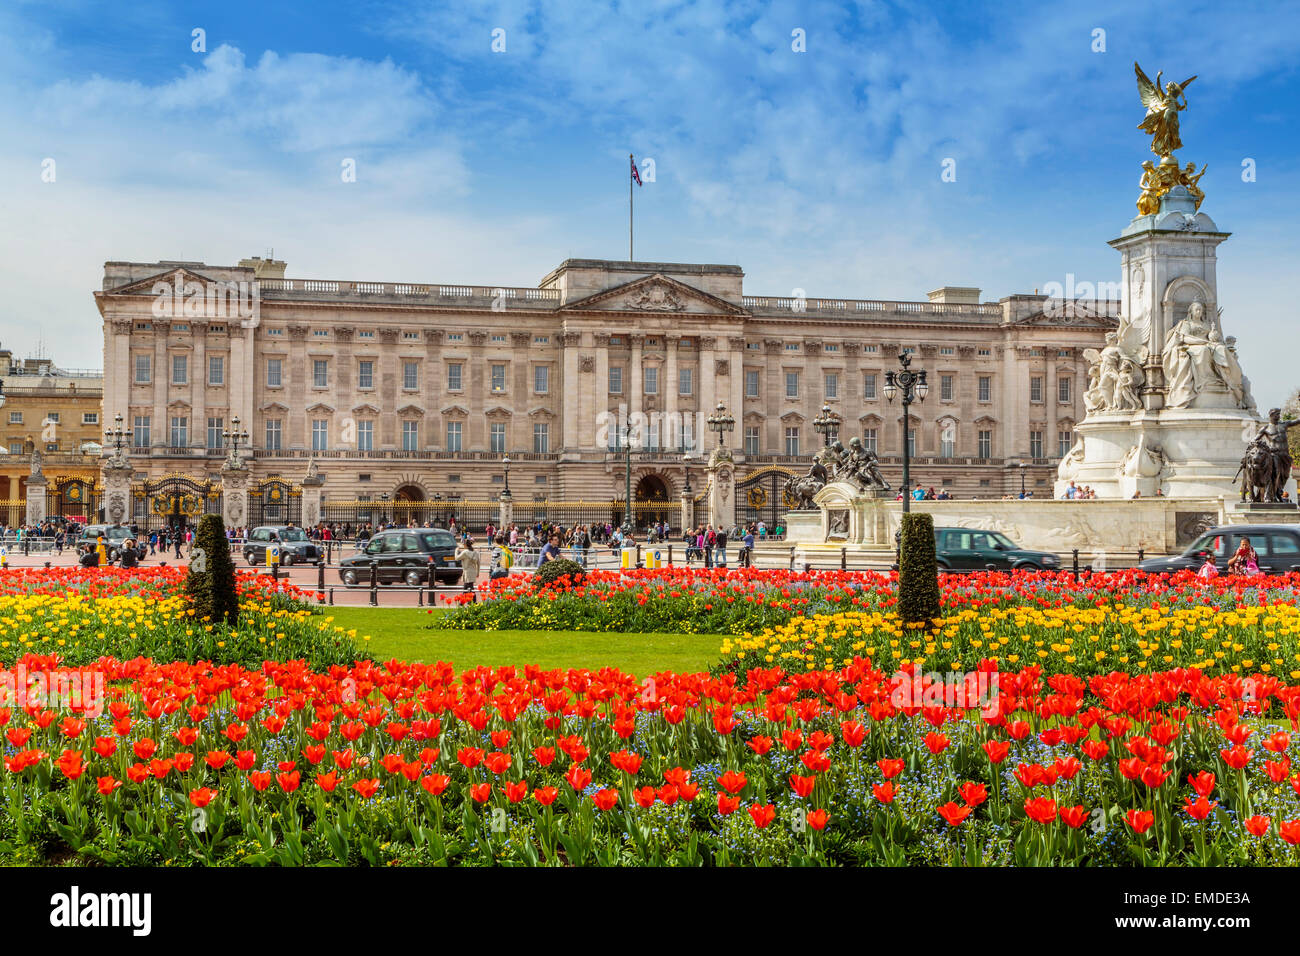 A Landscape view of Buckingham Palace in the Spring time, City of Westminster, London, England  UK - Stock Image